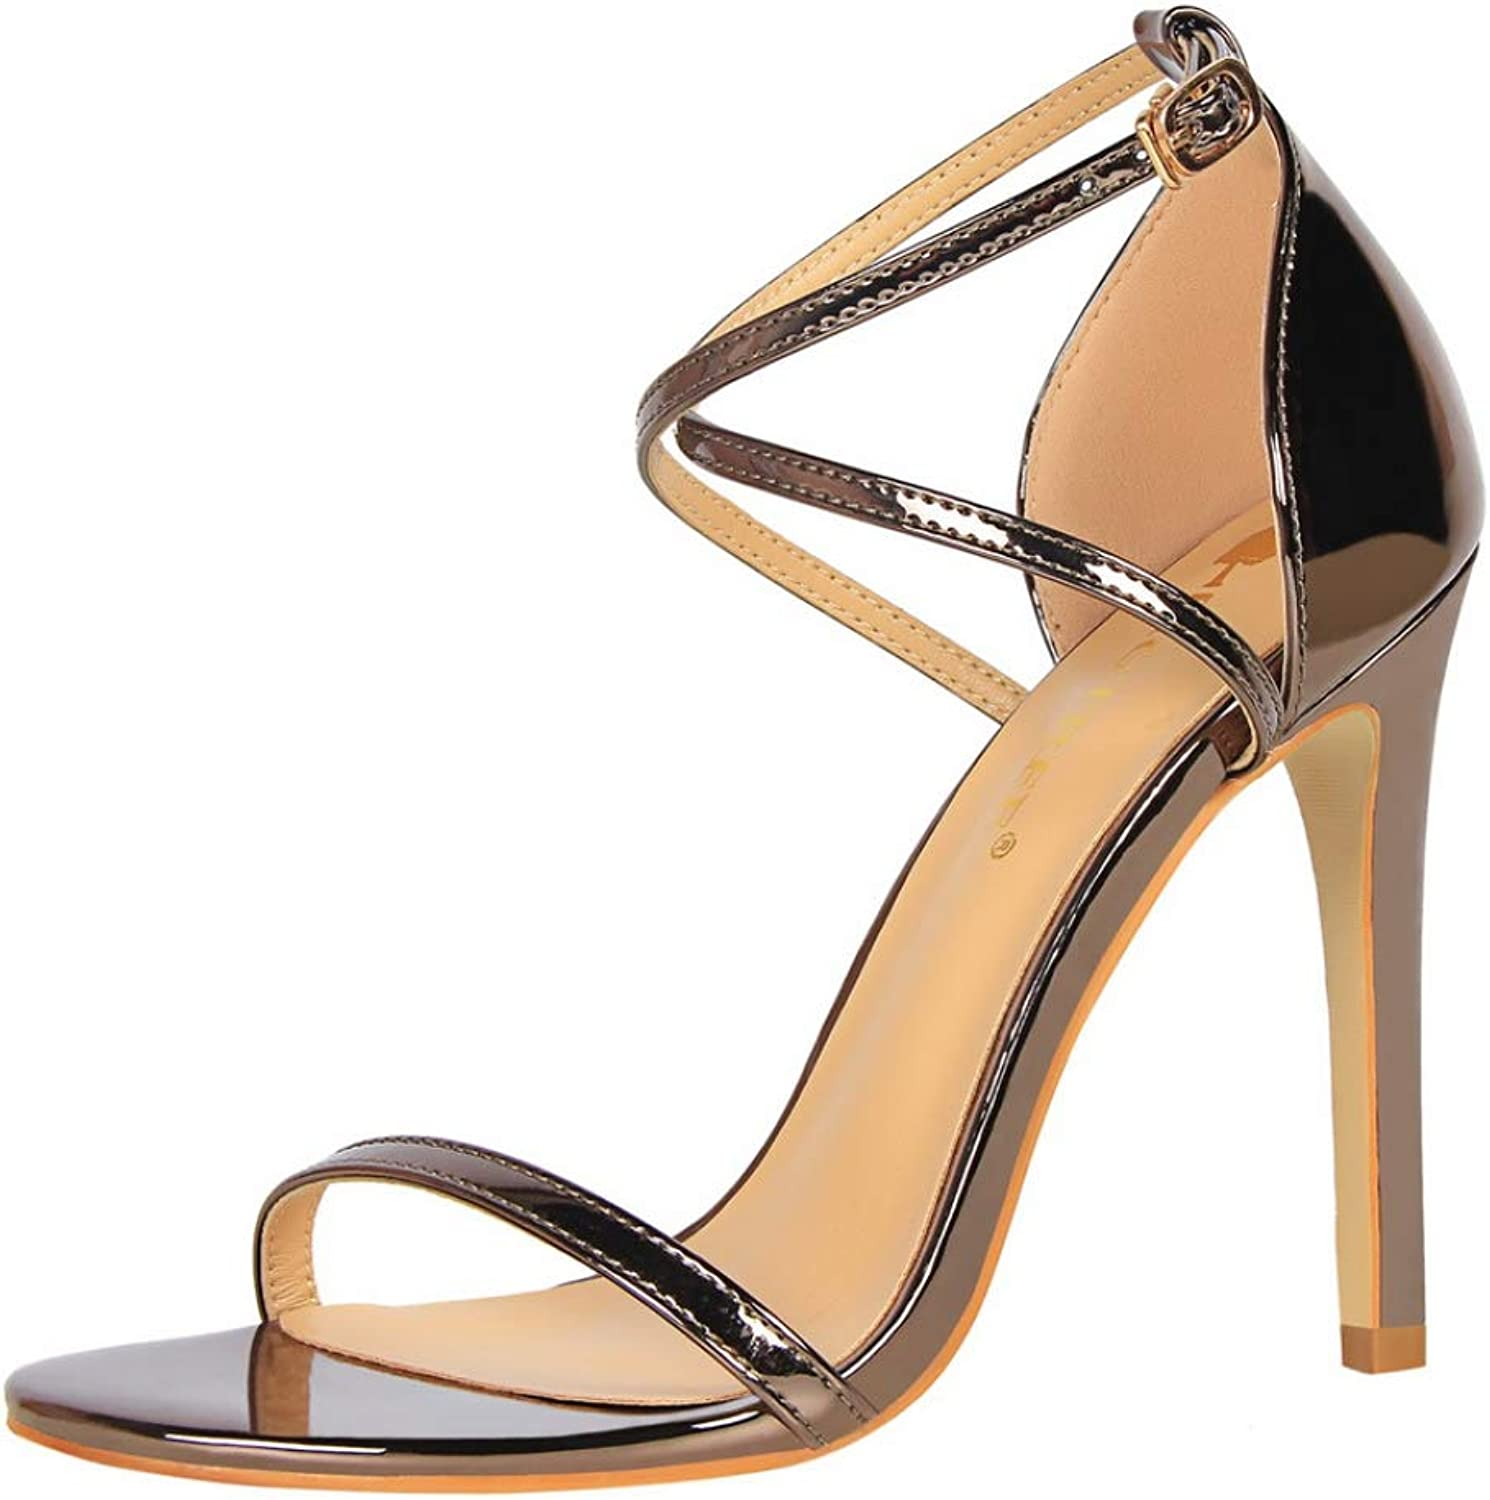 Woman Ssandals Patent Leather High Heels shoes Peep Toe Slides Buckle Pumps Sshallow shoes women Bronze Champagne Silver Black